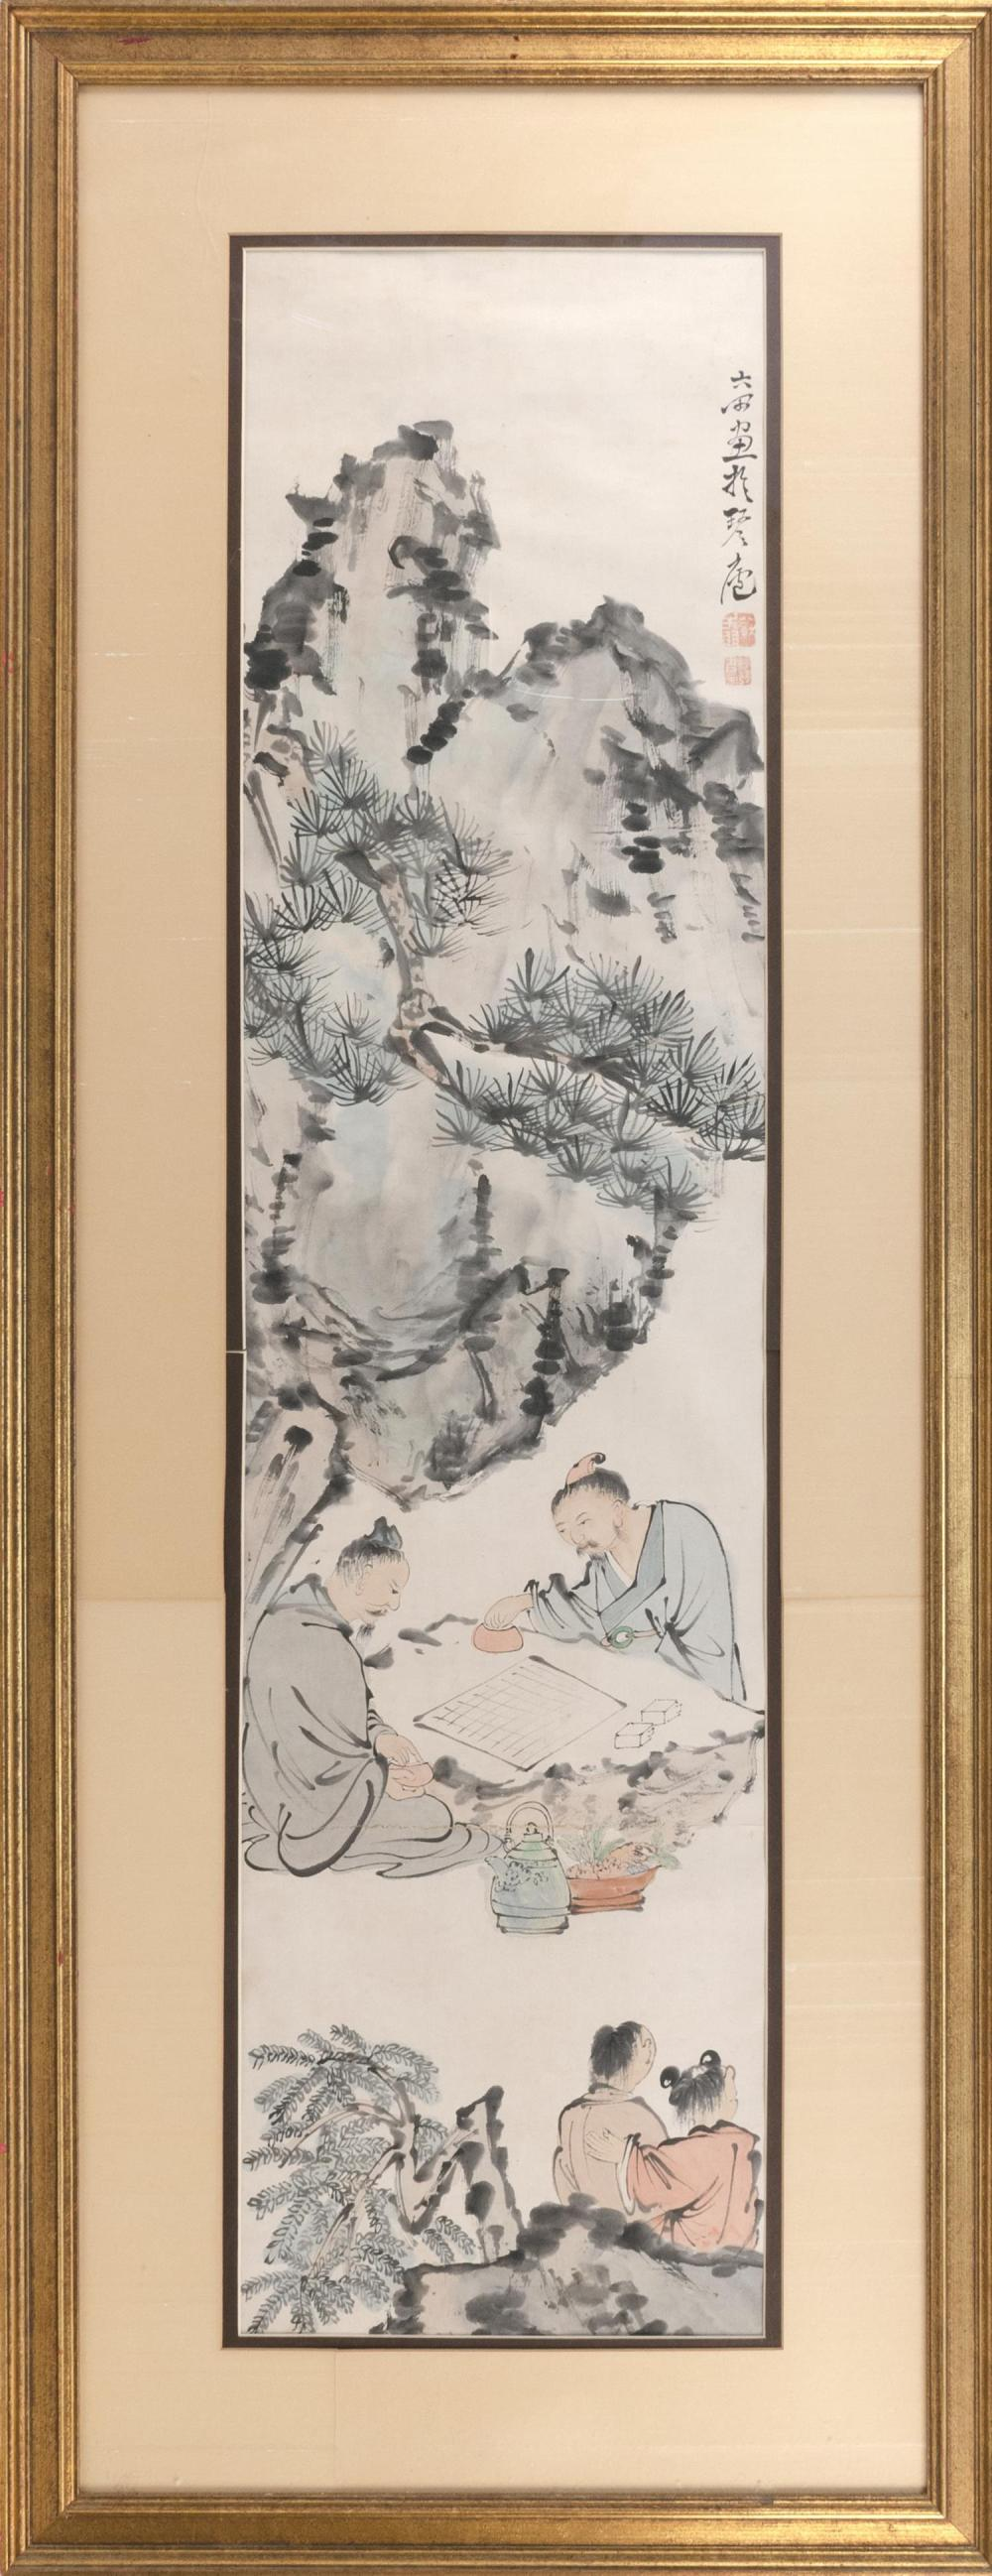 CHINESE PAINTING ON PAPER By Su Lou Pin. Depicting two scholars playing go, with pine trees and distant mountains. Signed and seal m...